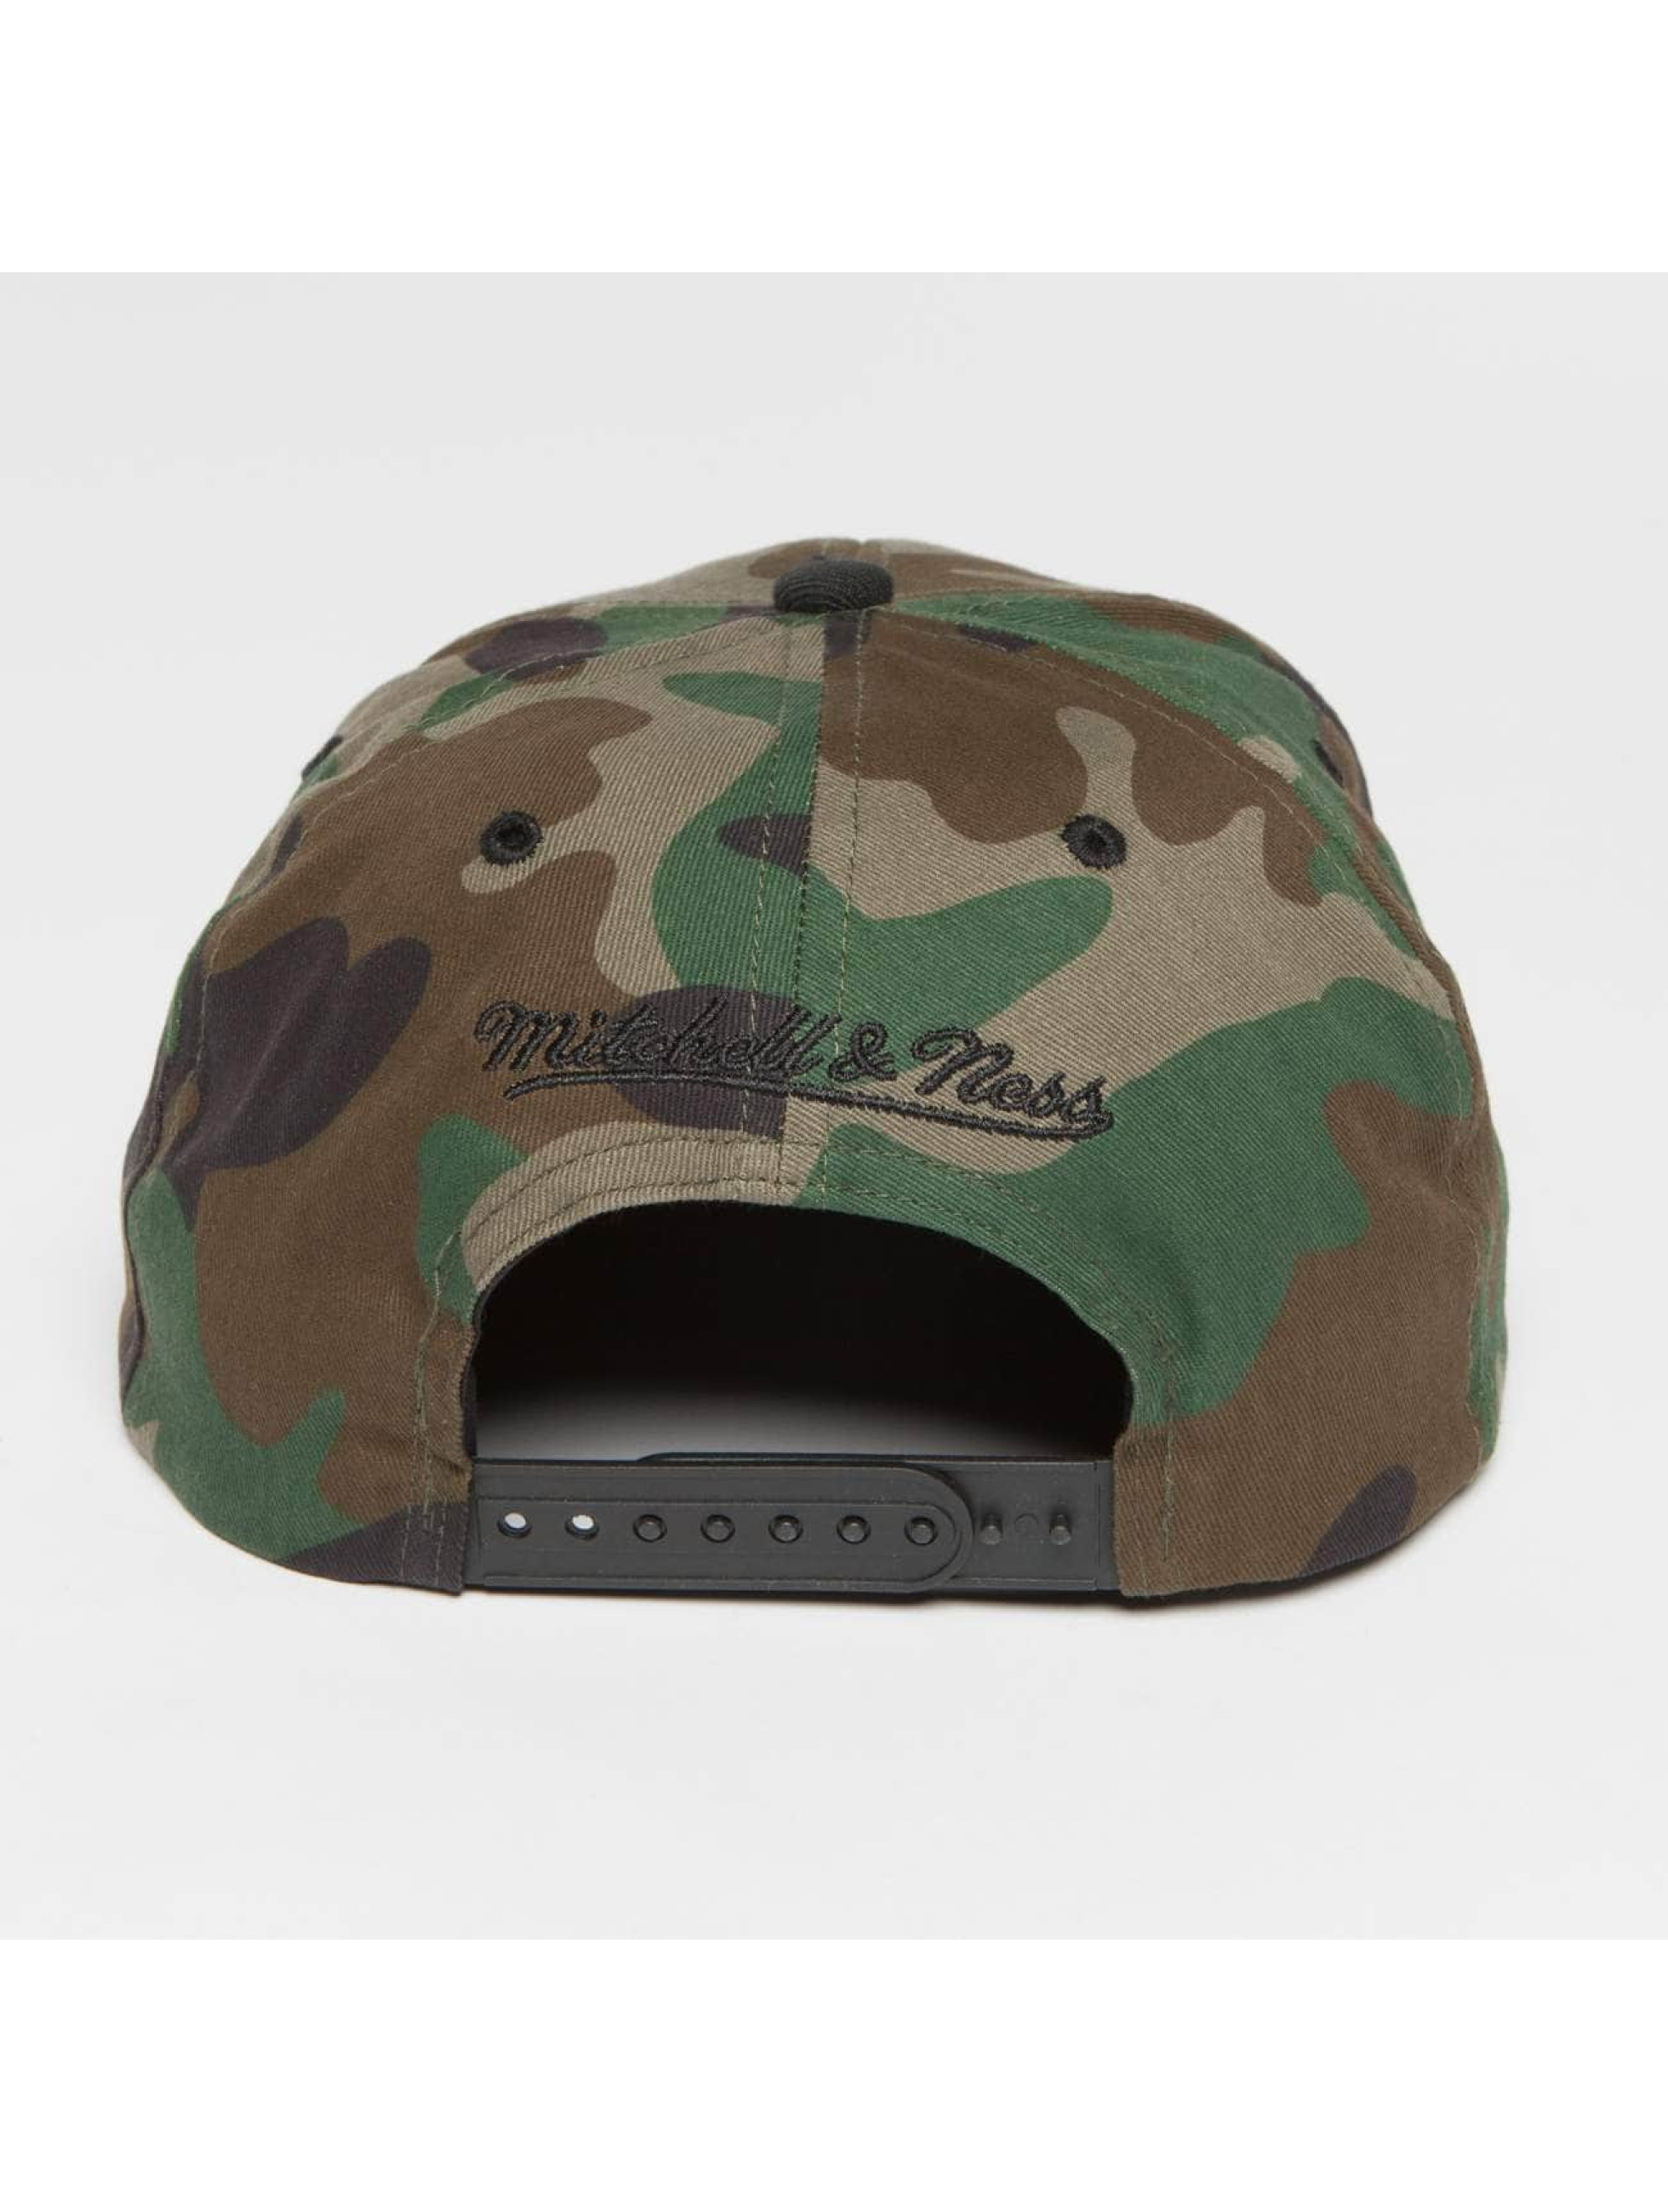 Mitchell & Ness Casquette Snapback & Strapback Own Brand Box Logo camouflage